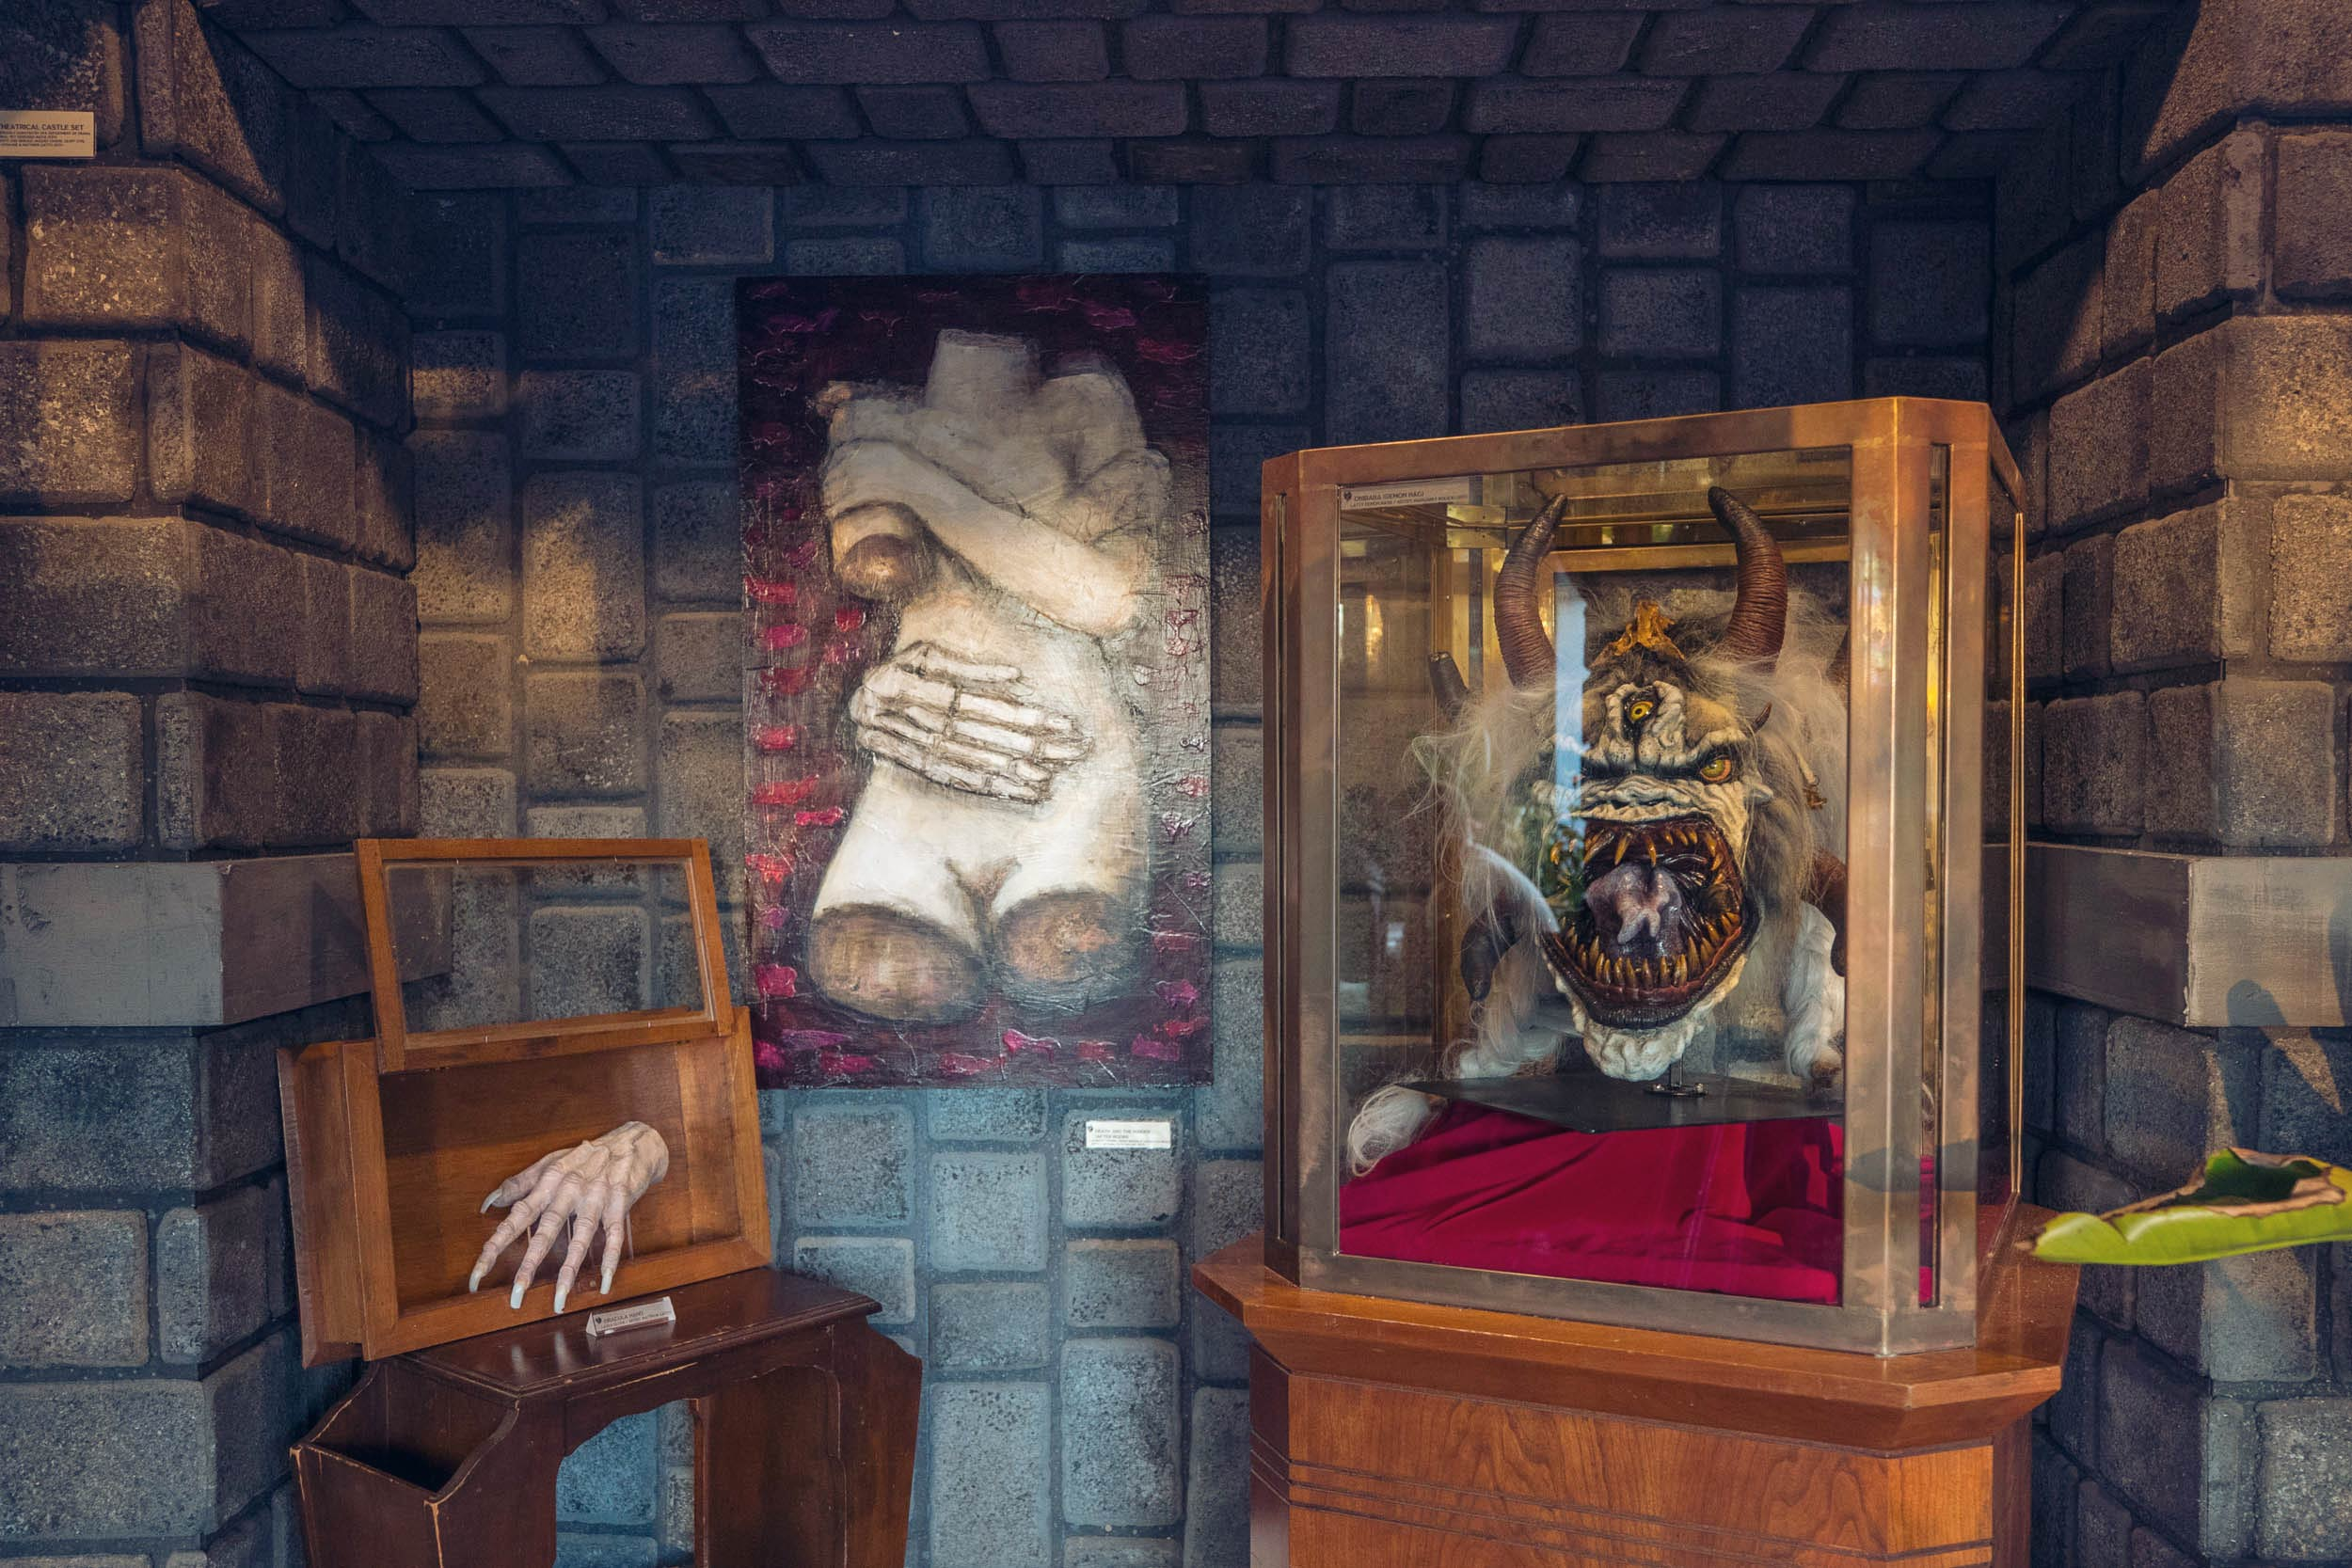 Horror-themed items on display in a room with fake stone walls